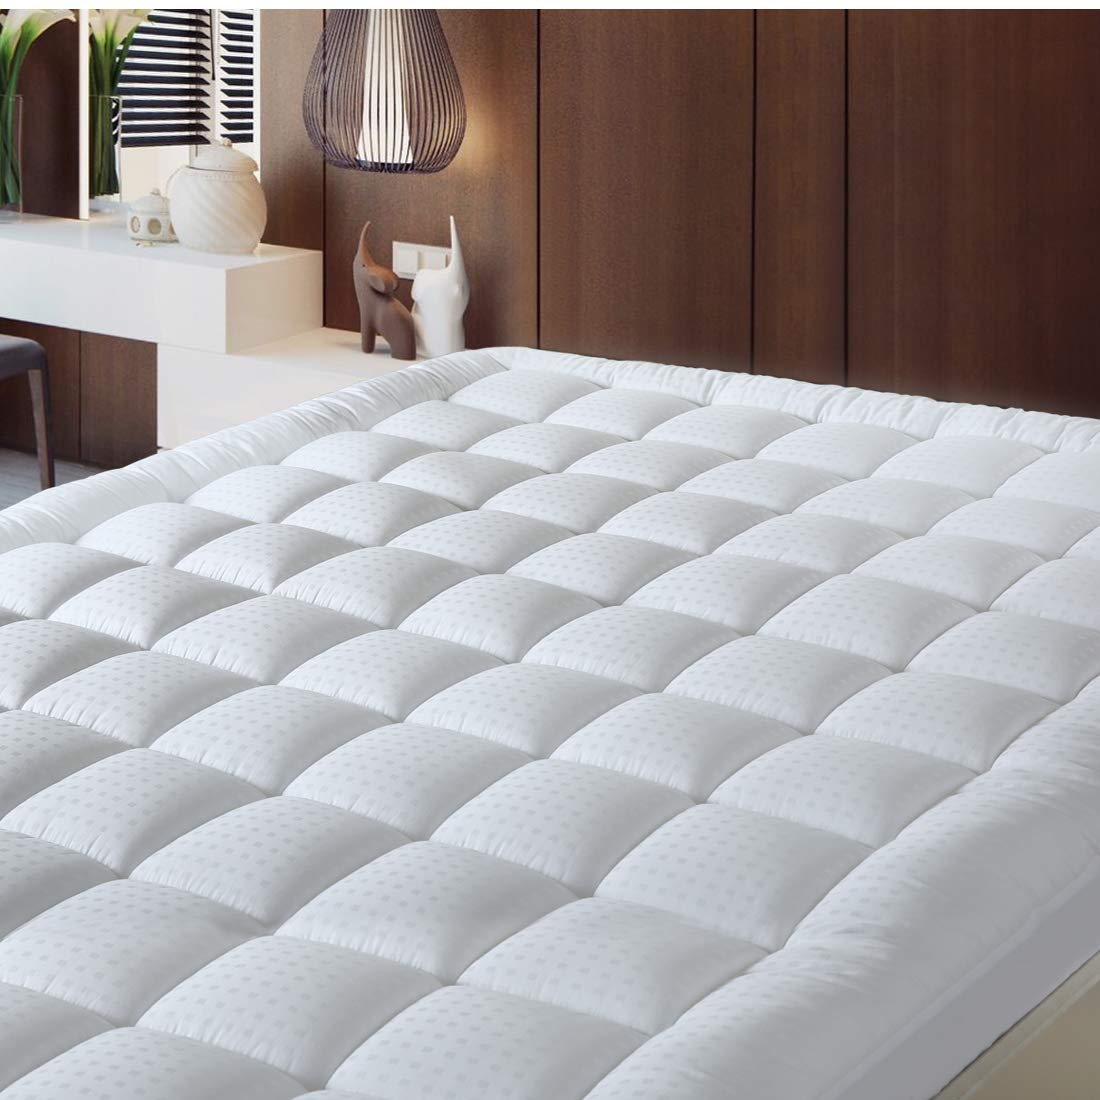 Balichun Pillowtop Mattress Pad Cover 300TC 100% Cotton Down Alternative Filled Mattress Topper